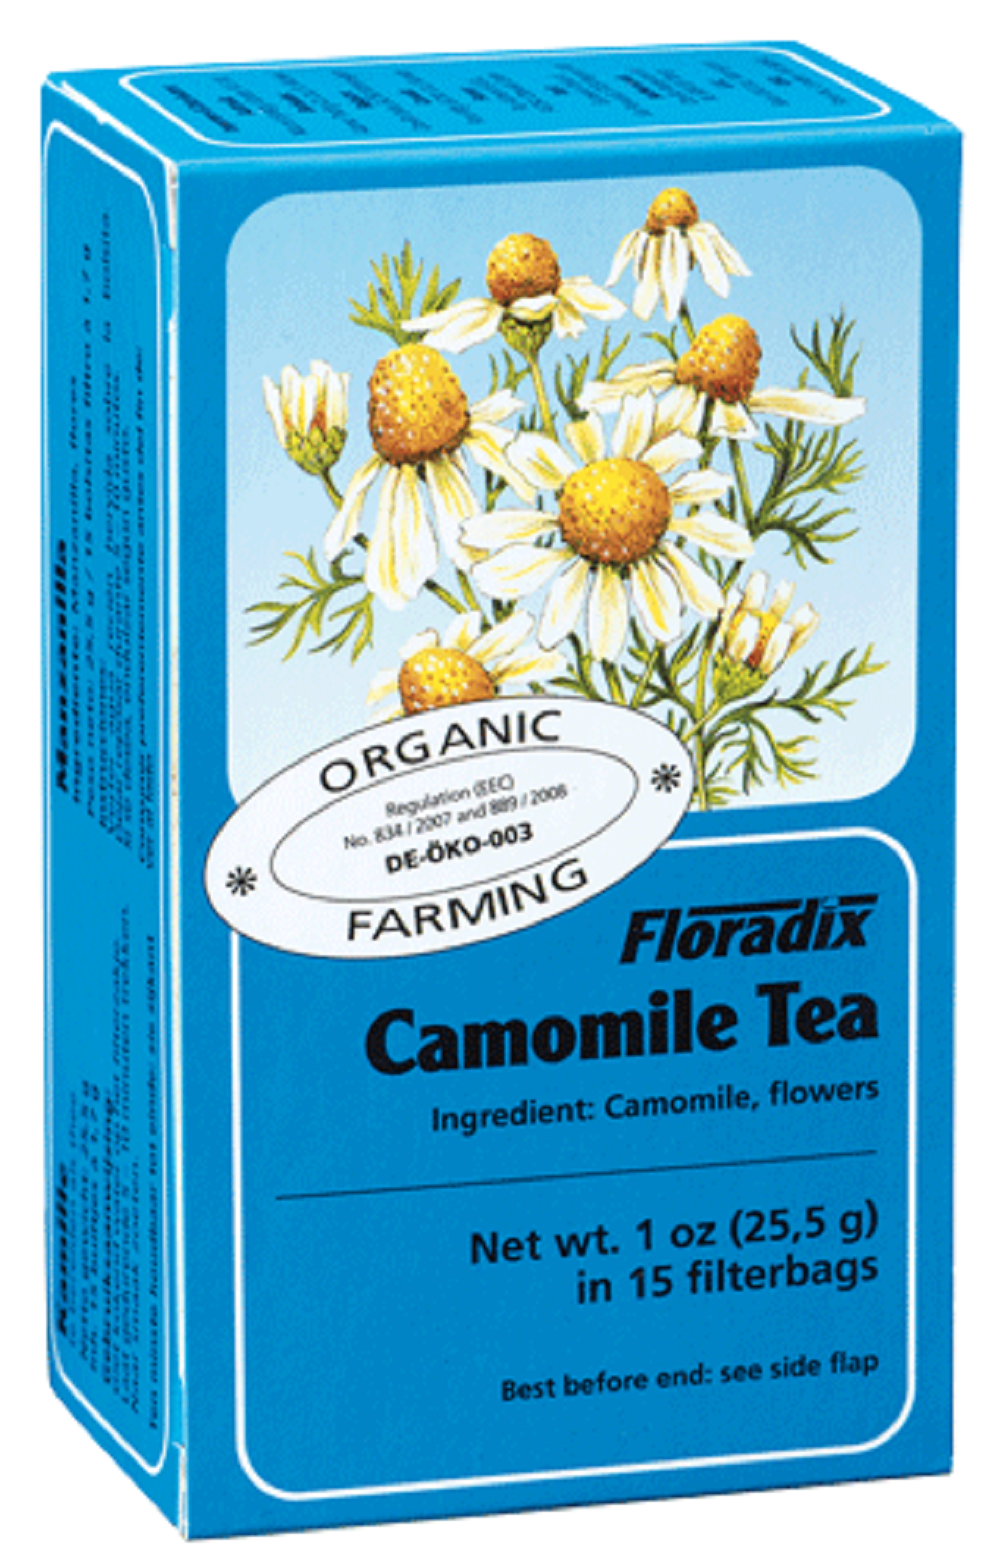 Camomile Herbal Teabags 15 filterbags (1.7g) - $3.23